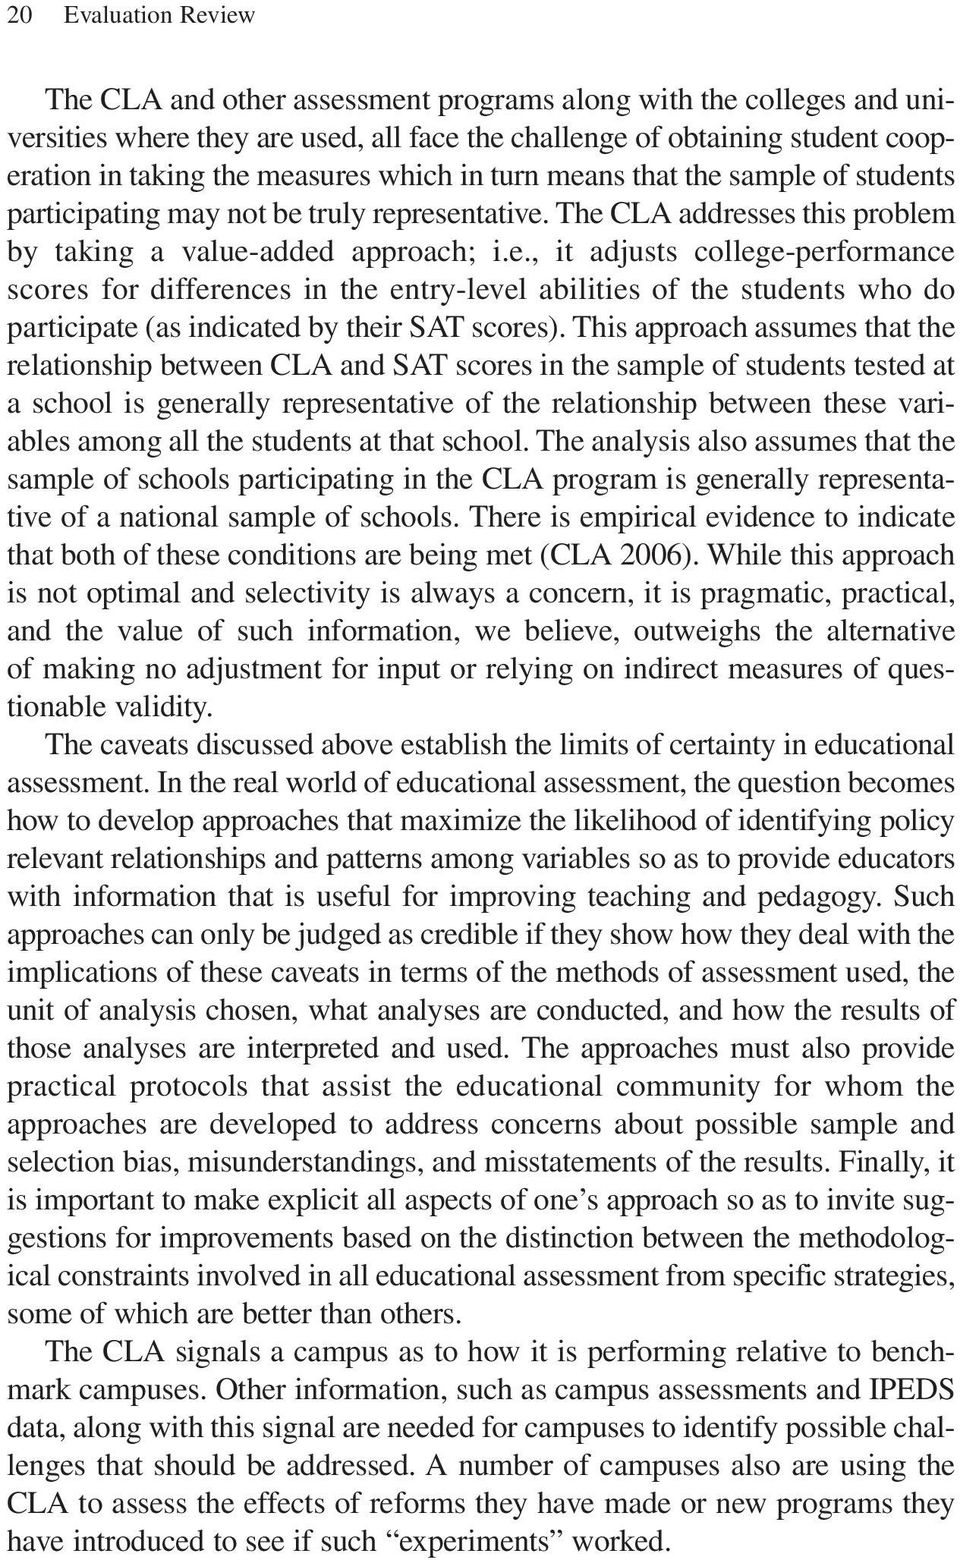 This approach assumes that the relationship between CLA and SAT scores in the sample of students tested at a school is generally representative of the relationship between these variables among all